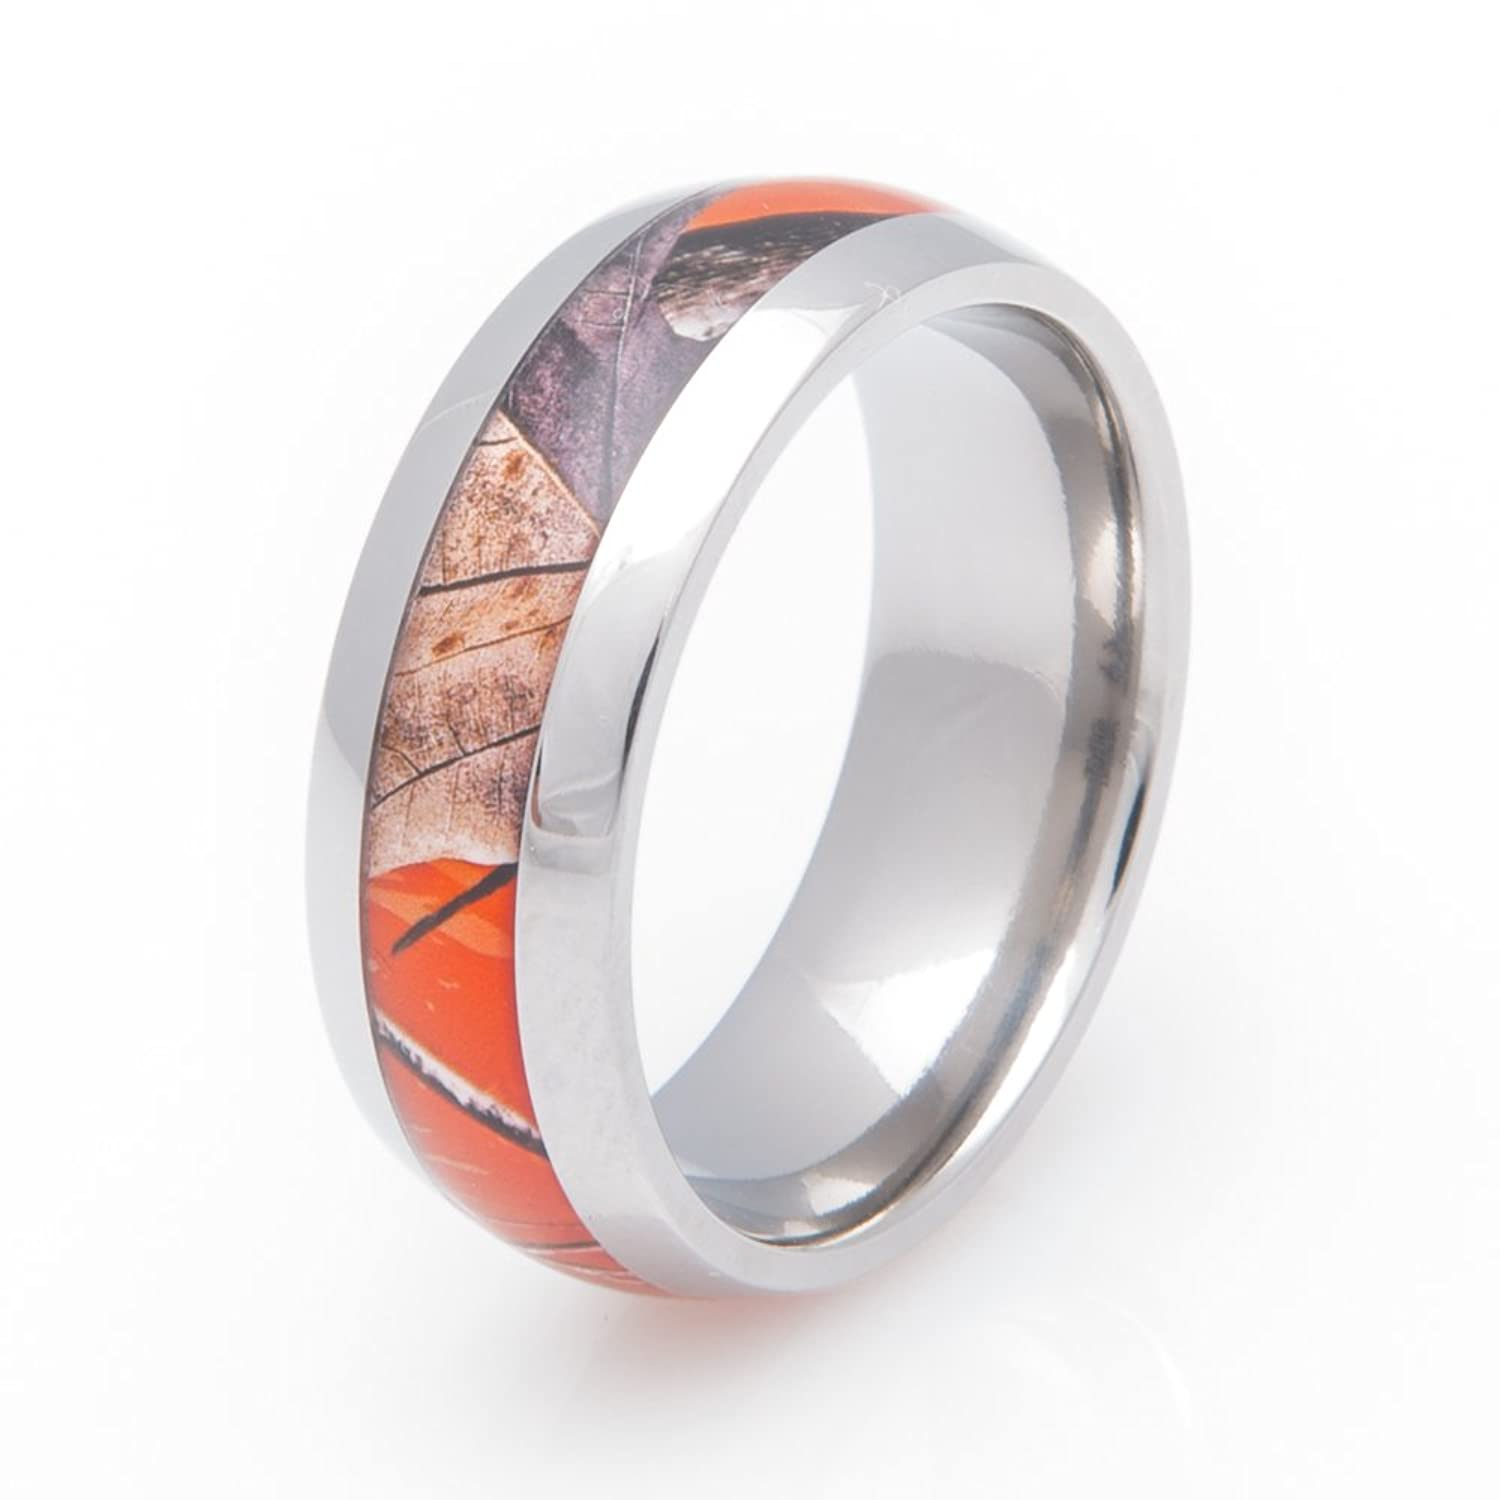 Titanium Orange Realtree AP Camo Ring 8MM fort Fit